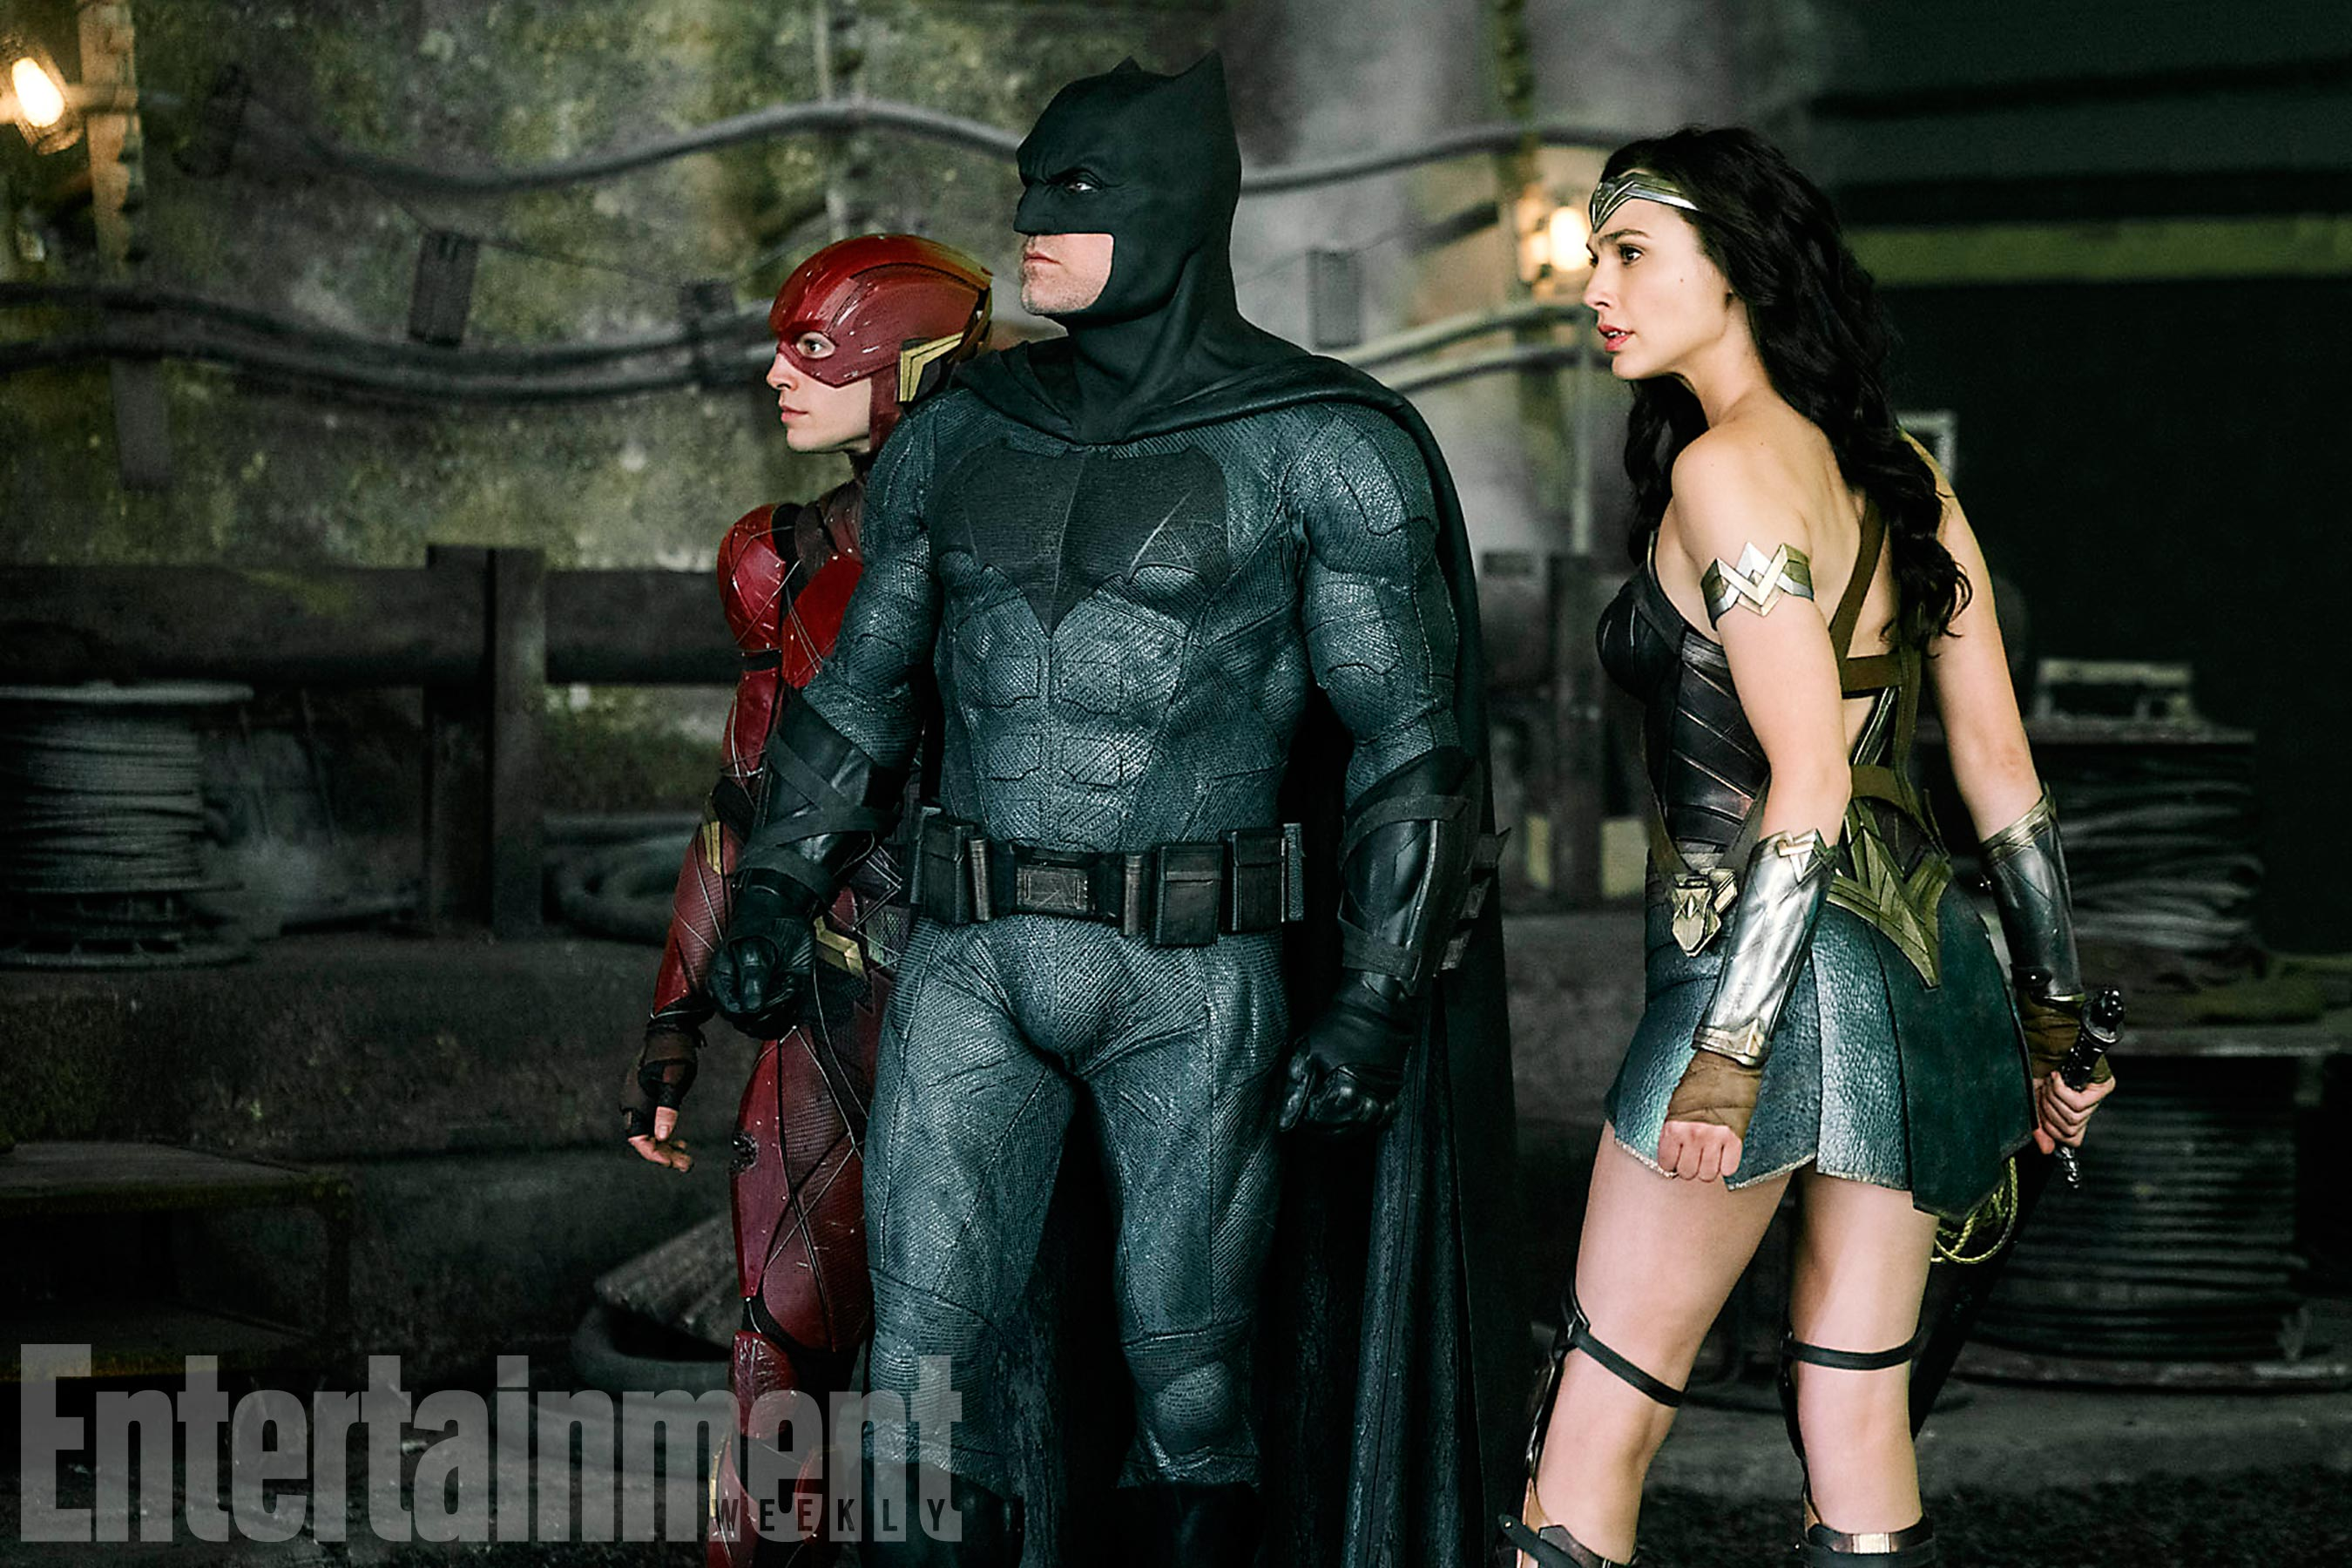 Justice League: The Scarlet Speedster Rubs Shoulders With Bats And Diana In New Pic